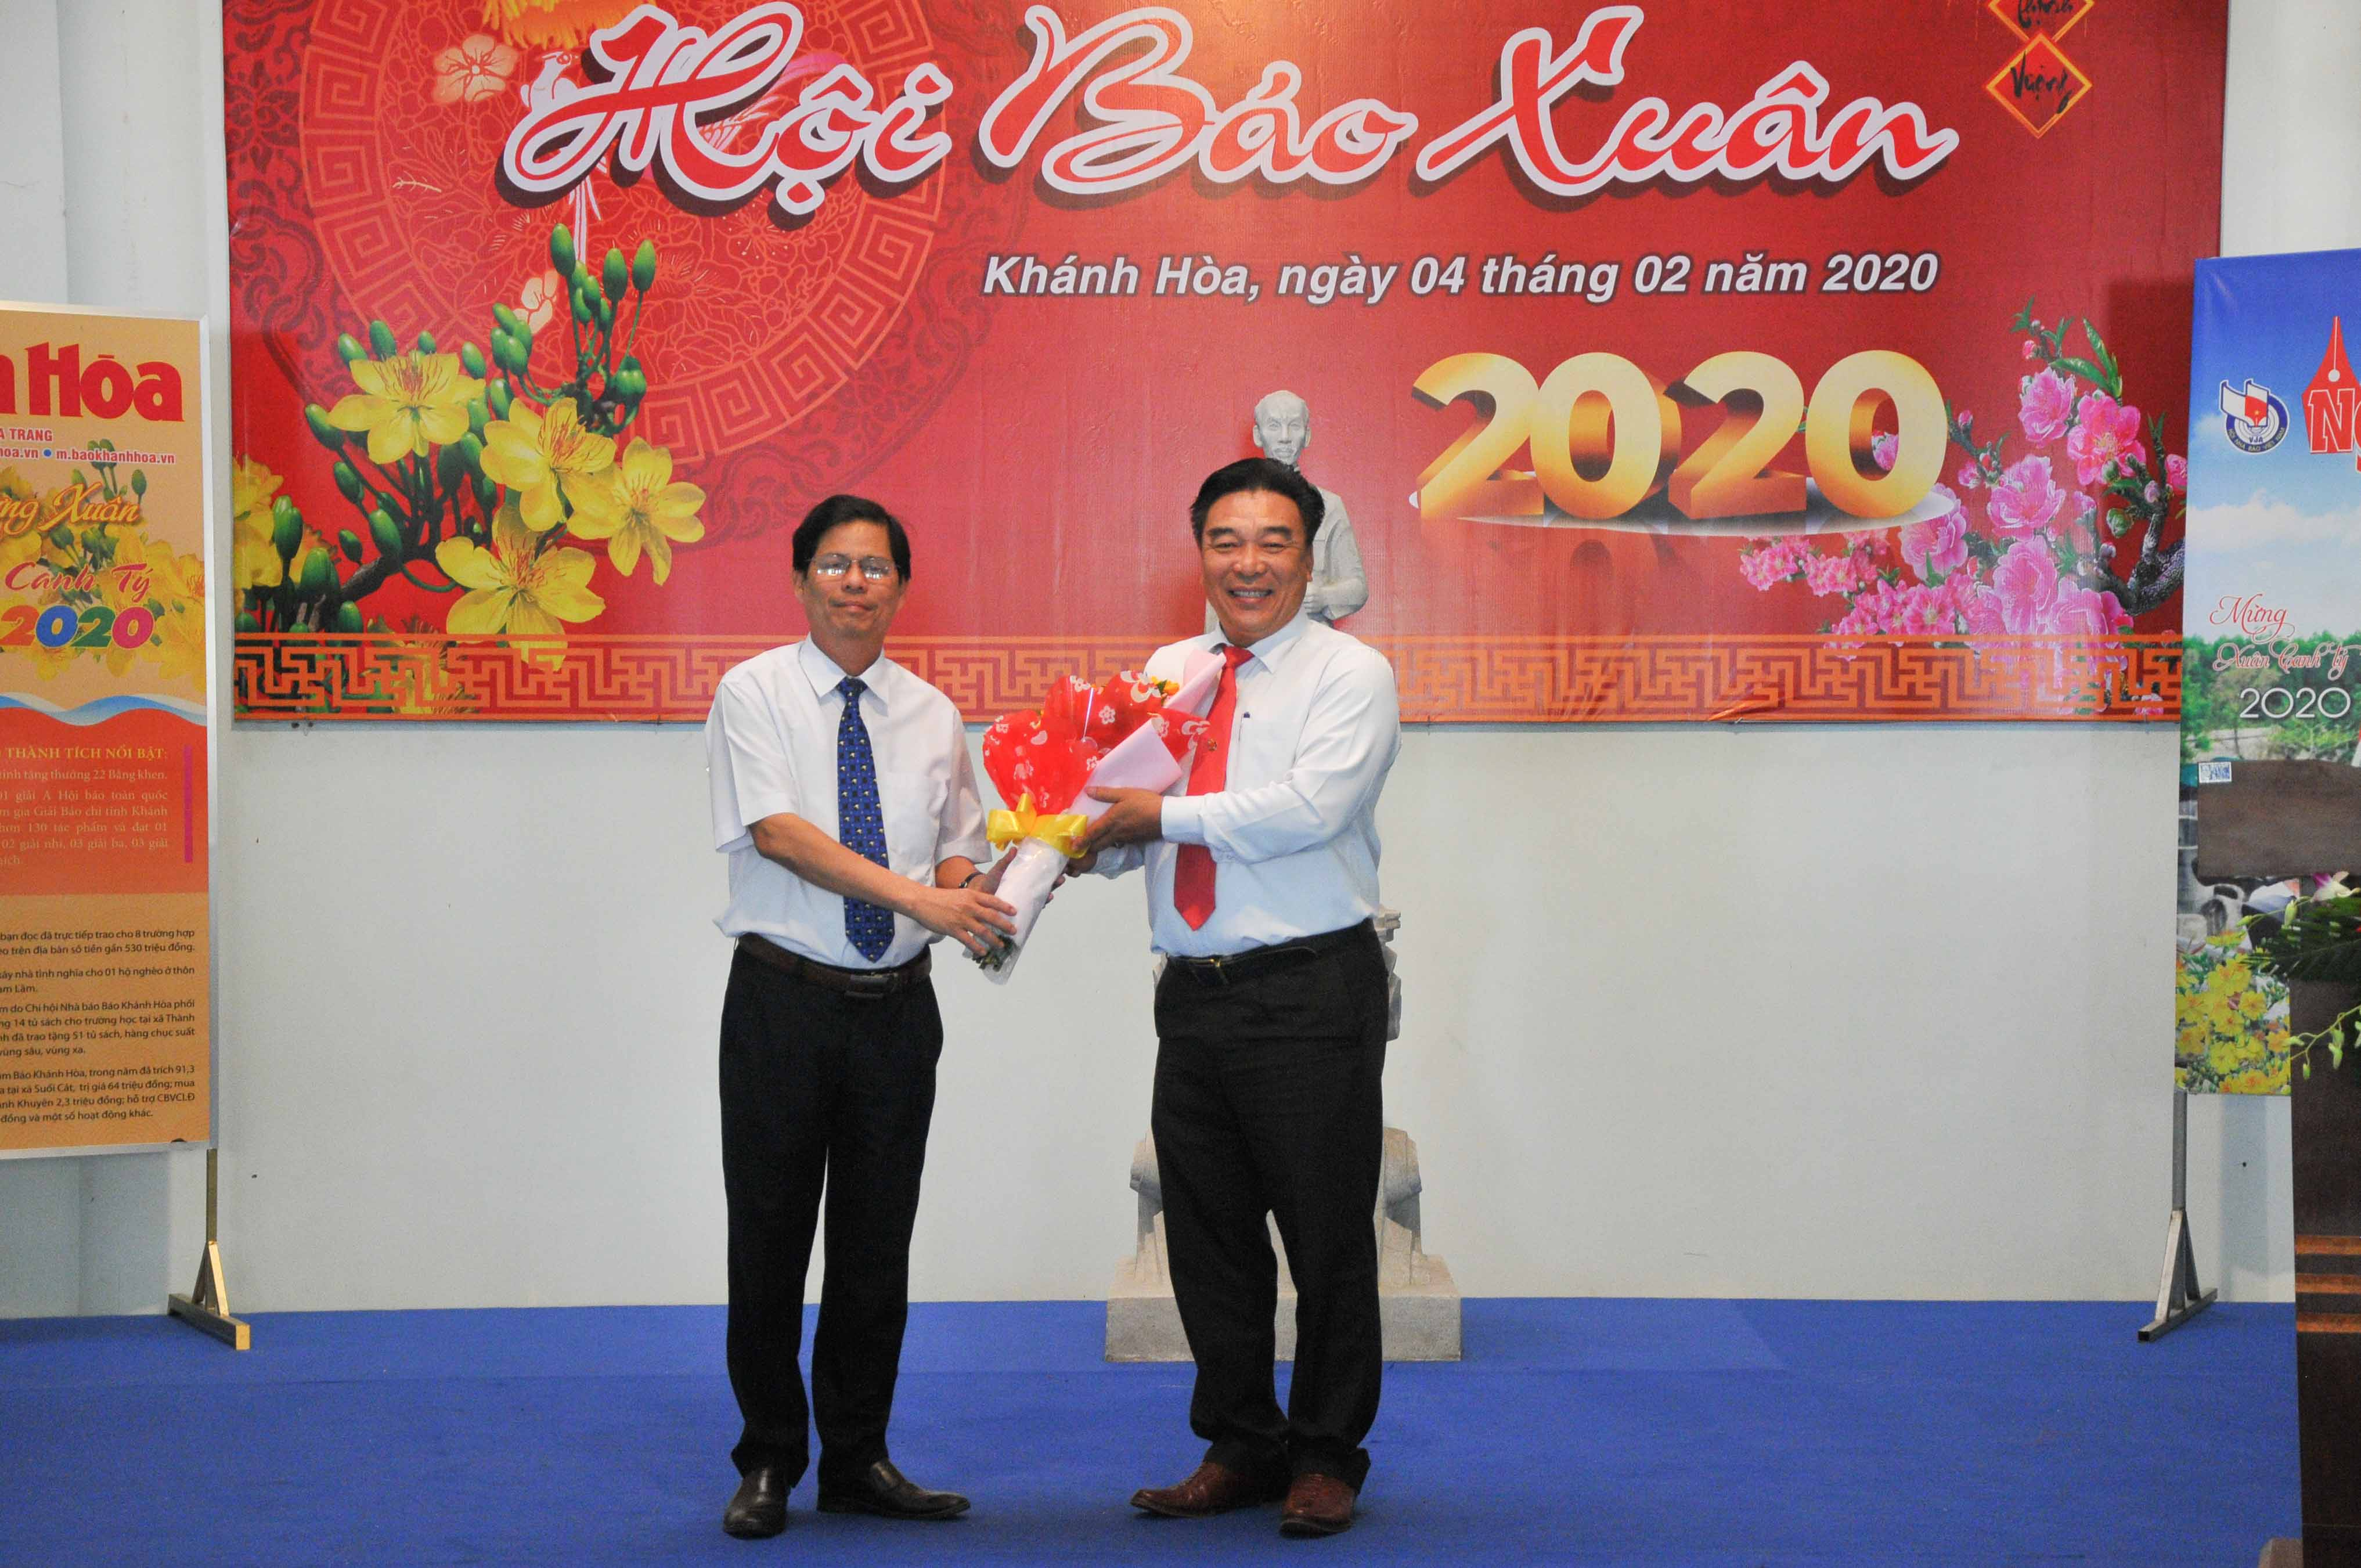 Leader of Khanh Hoa Province presenting flowers to organizer of 2020 Spring Newspaper Festival